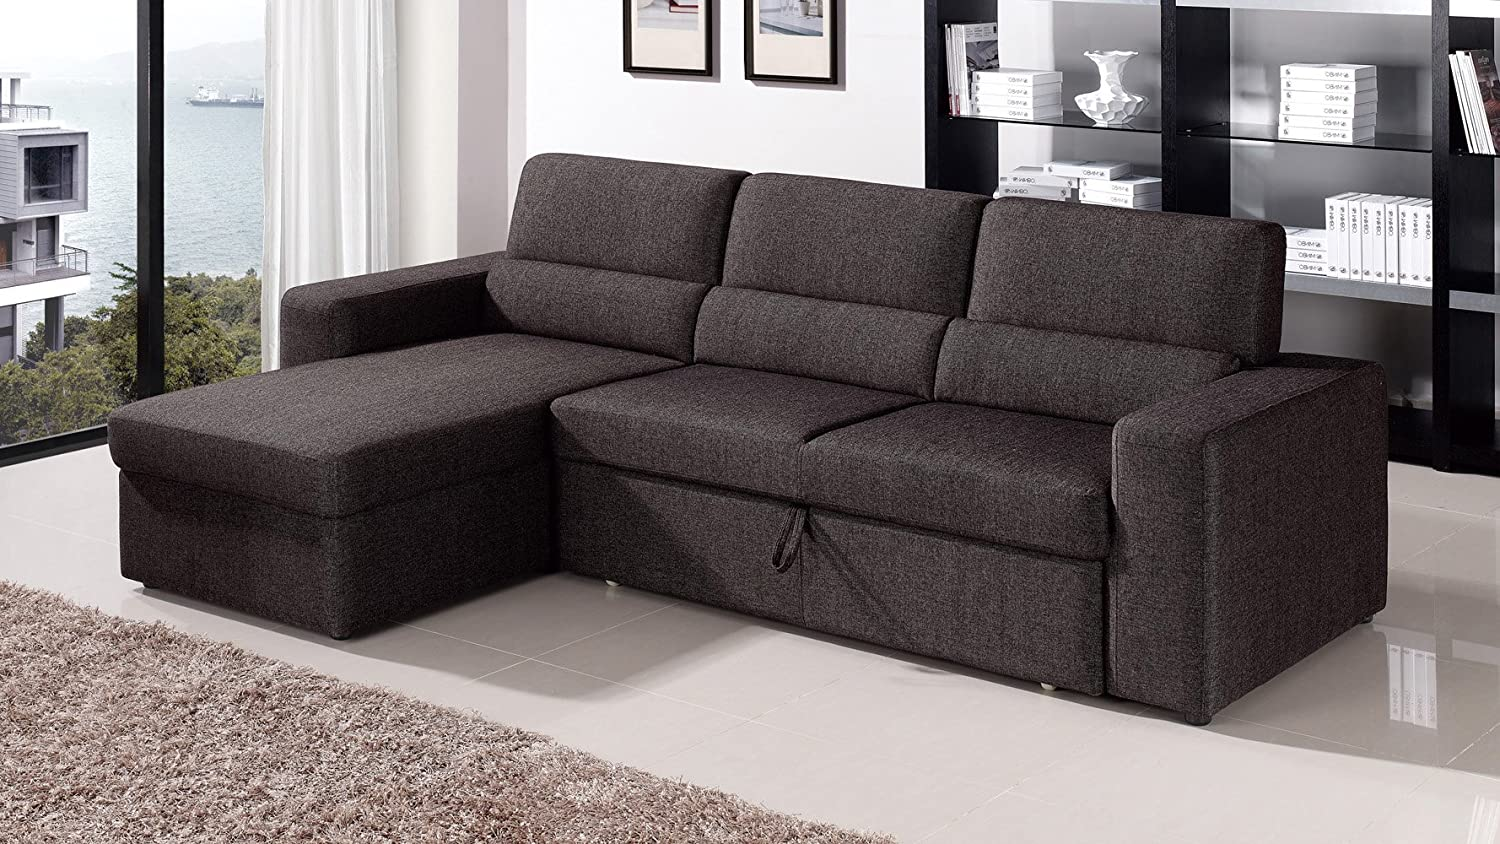 Amazon.com Black/Brown Clubber Sleeper Sectional Sofa - Left Chaise Kitchen u0026 Dining : sleeper sectional with chaise - Sectionals, Sofas & Couches